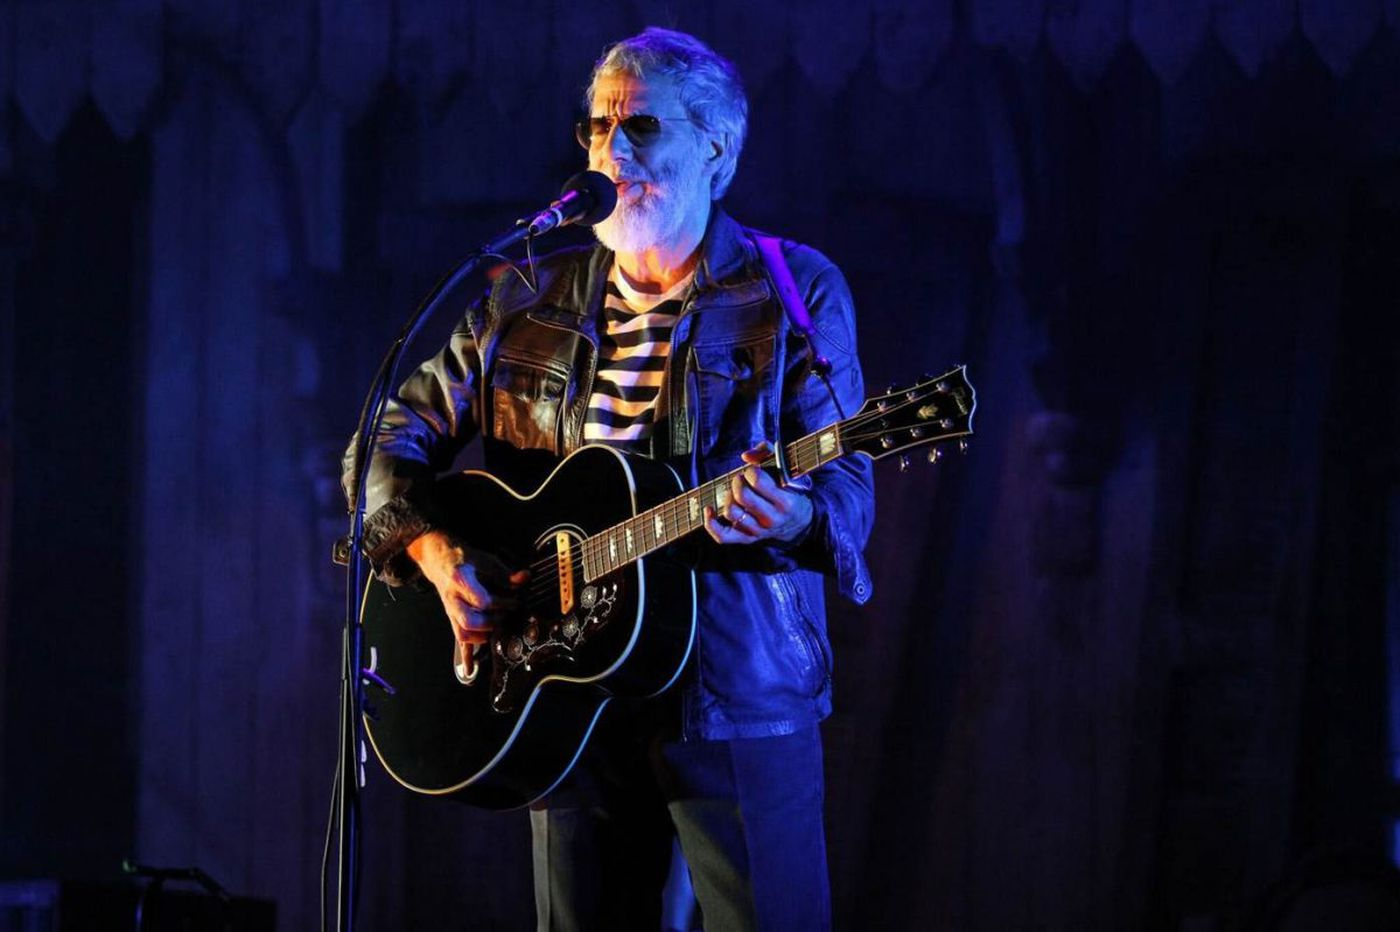 Cat Stevens' new album features songs he wrote 50 years ago